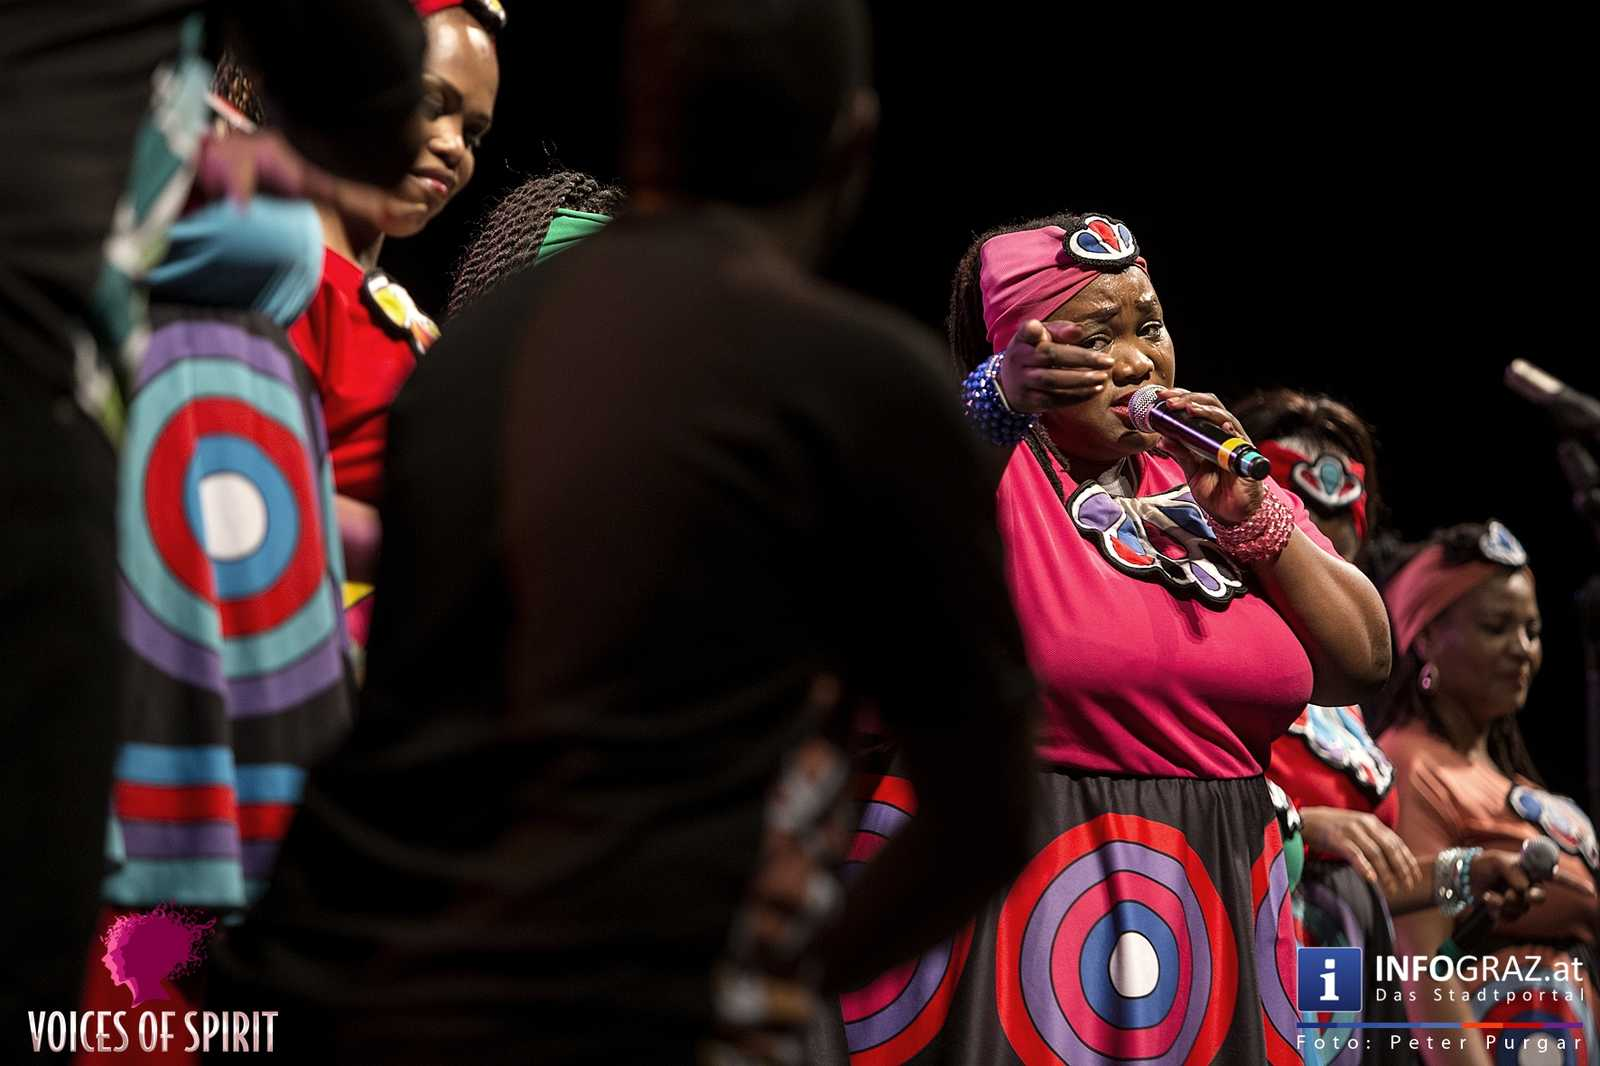 soweto gospel choir internationales chorfestival statdthalle graz voices of spirit eroeffnung festivals 2016 042